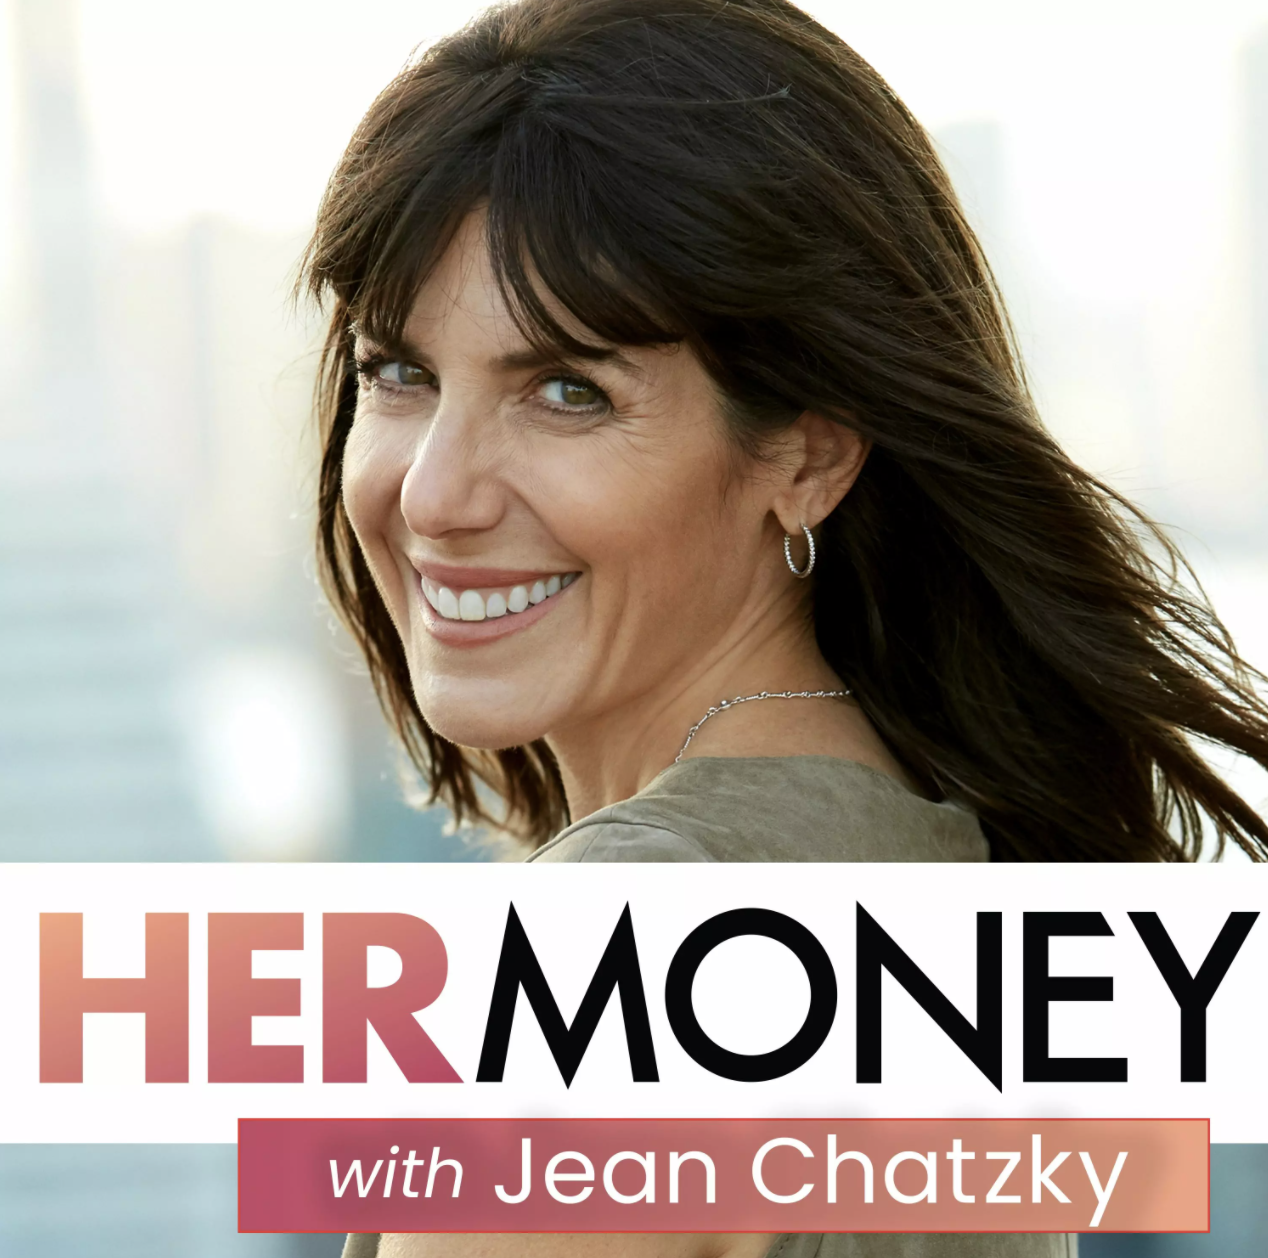 Jean Chatzky from the HerMoney podcast